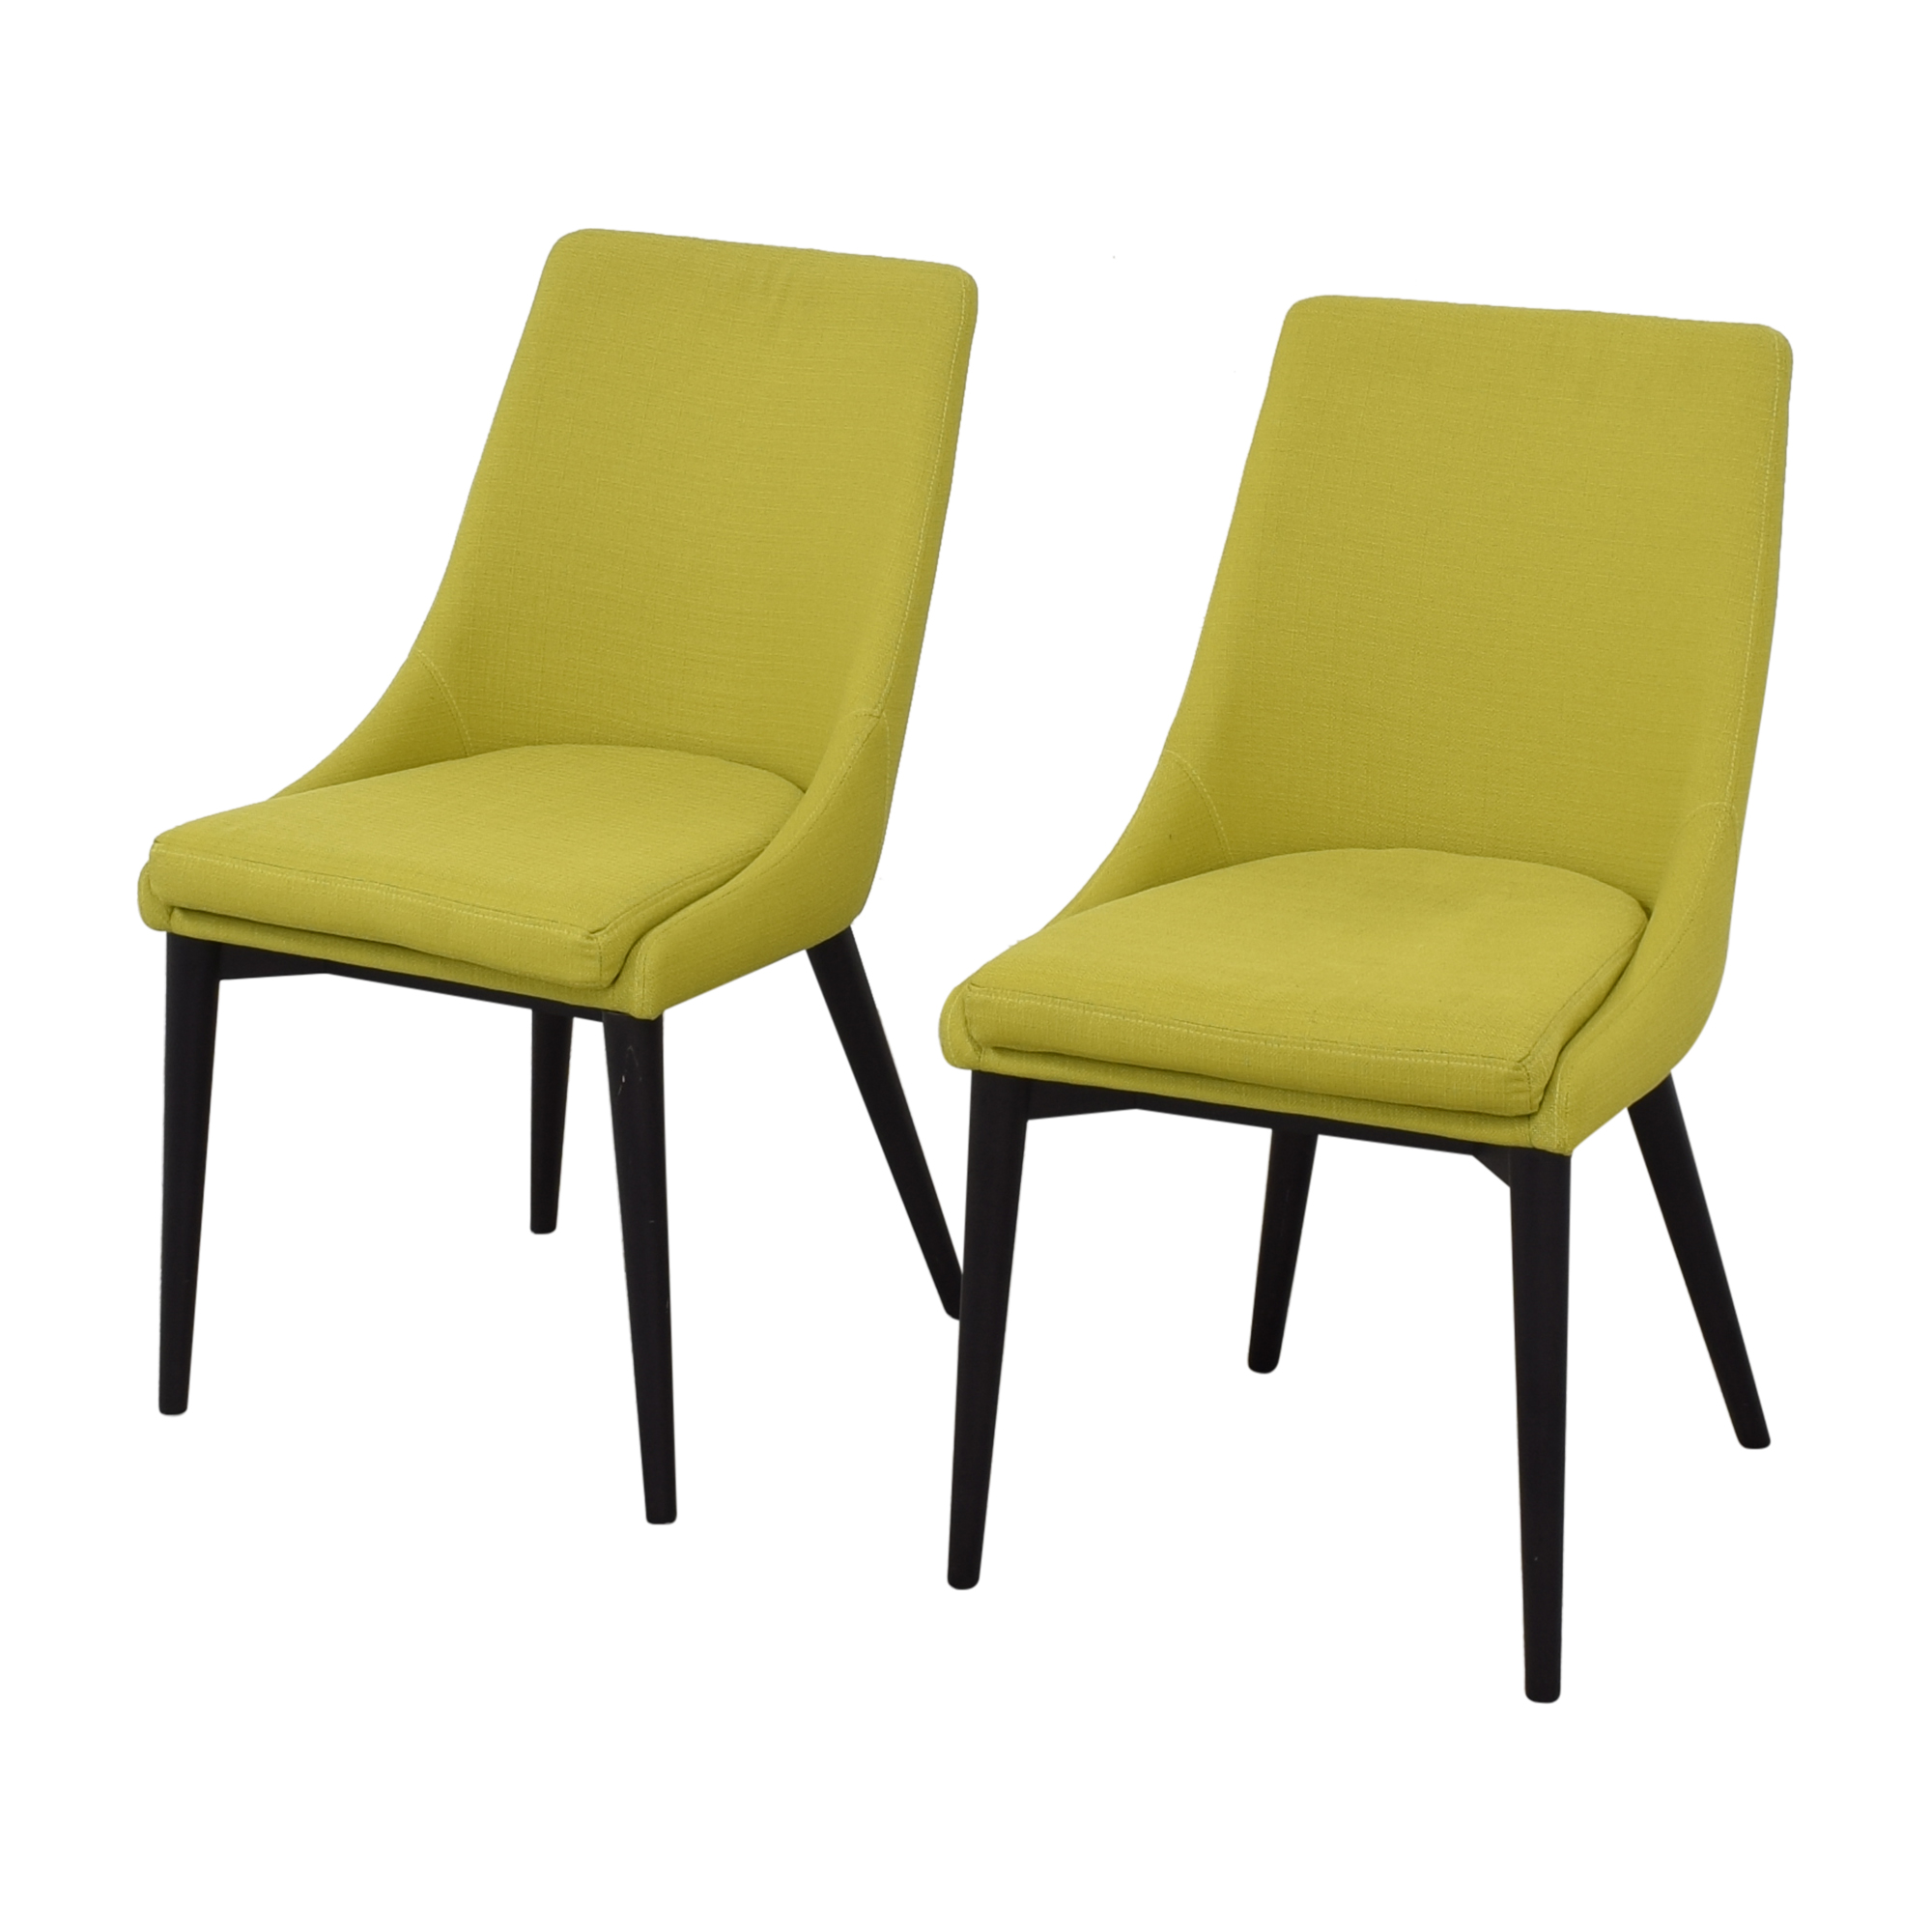 buy Modway Viscount Dining Chairs Modway